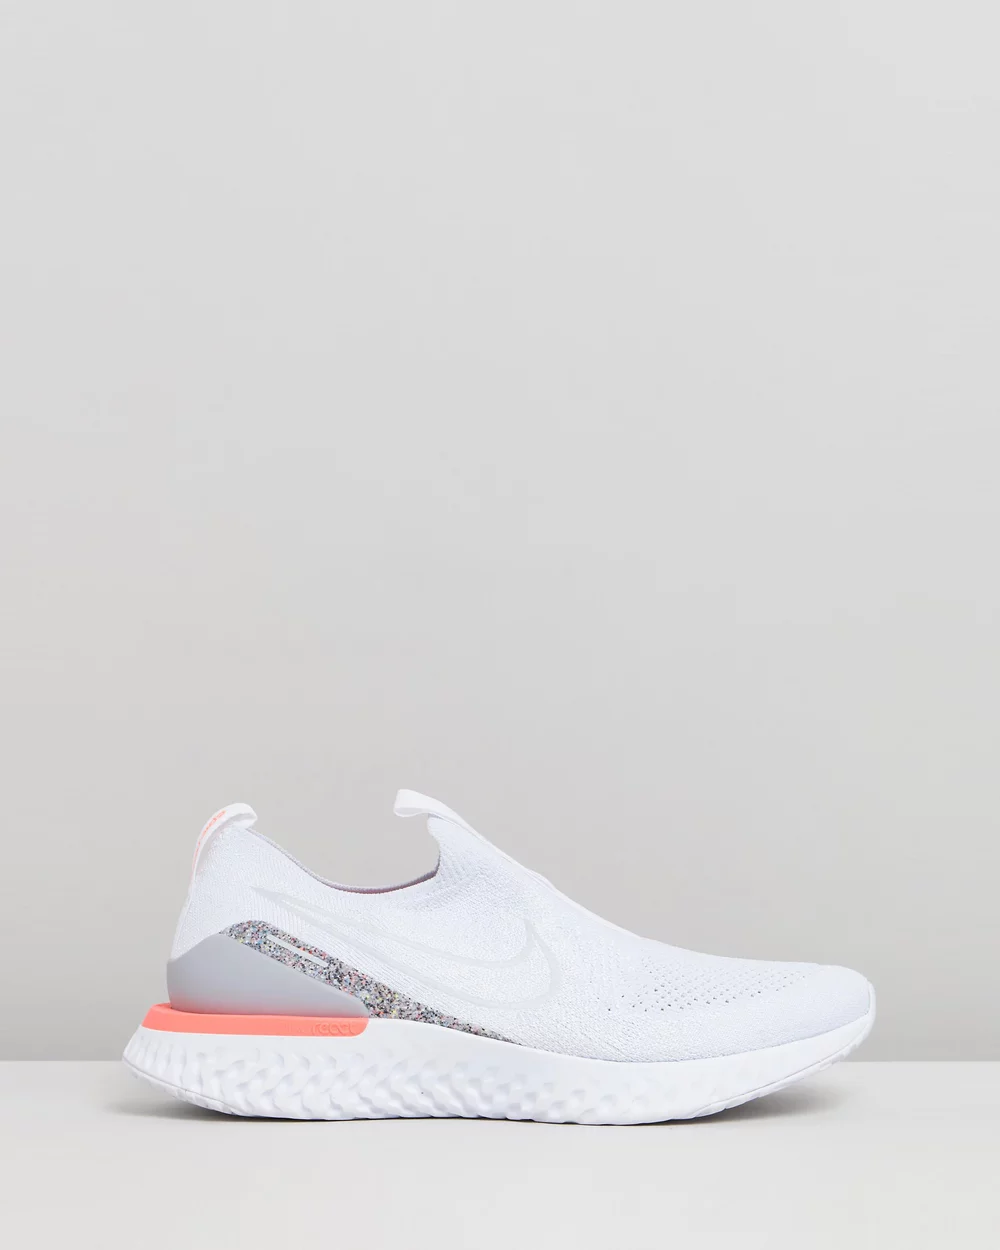 Epic Phantom React Flyknit Women's in 2020 Grå nike  Gray nike